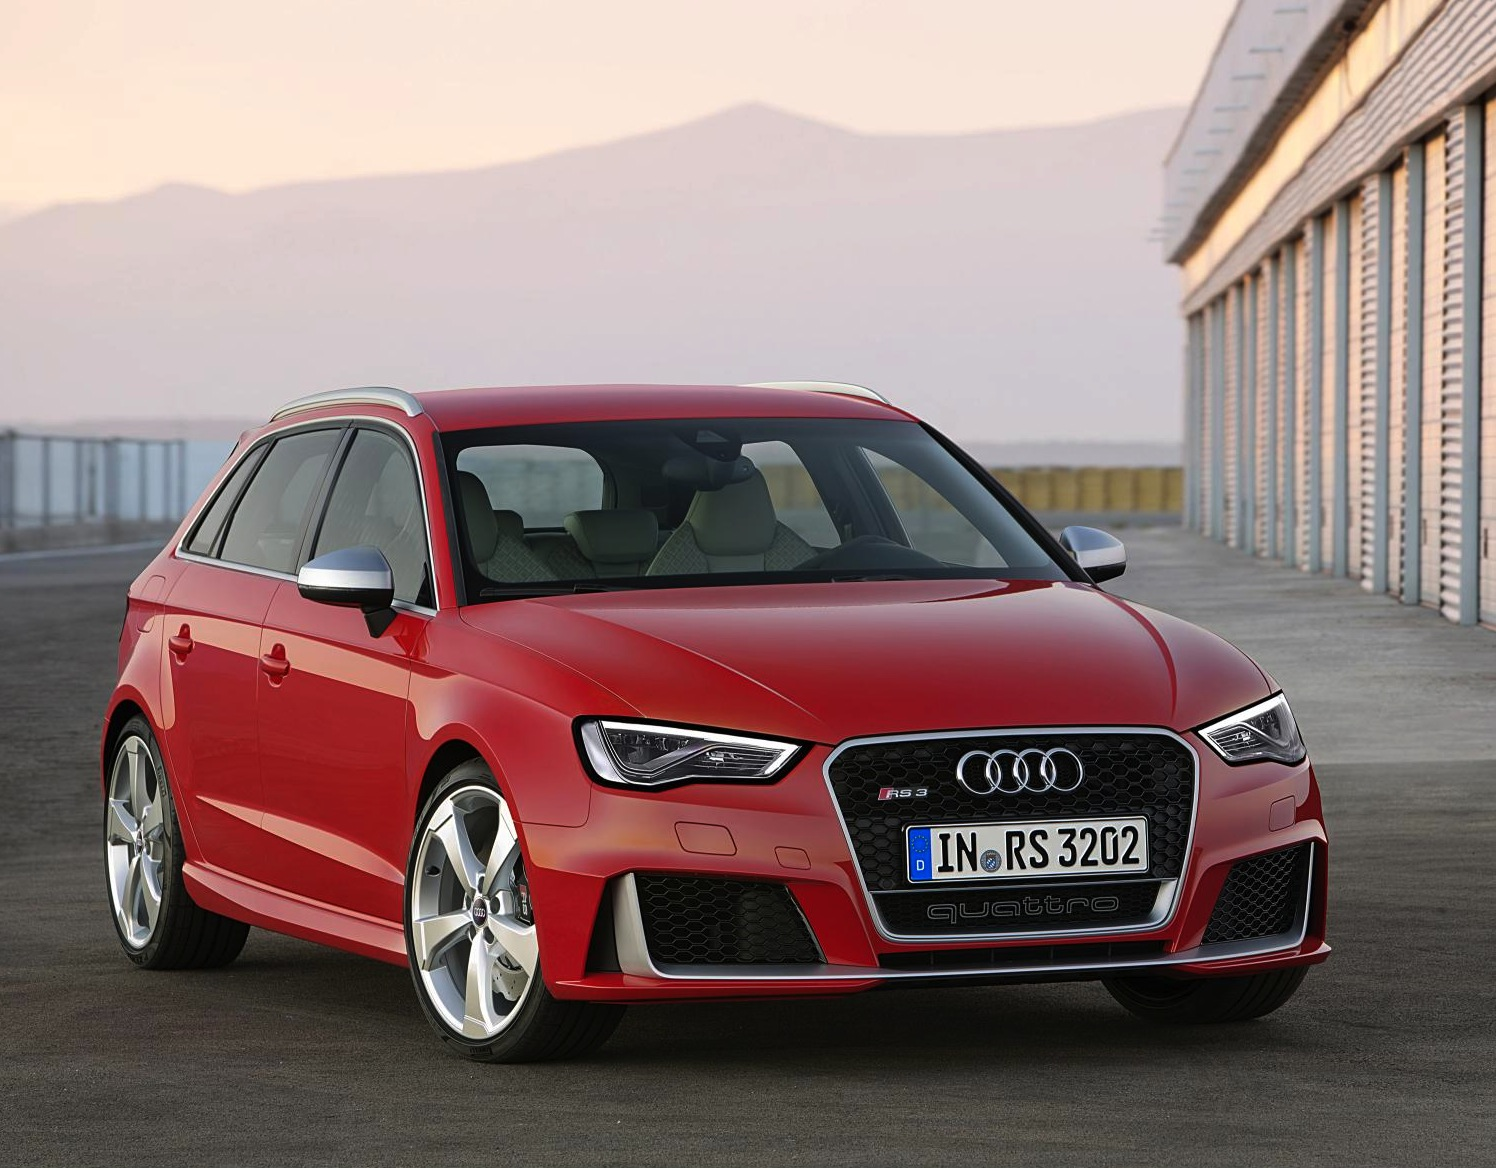 Audi's new pocket rocket, the RS3 Sportback, starts around £40,000